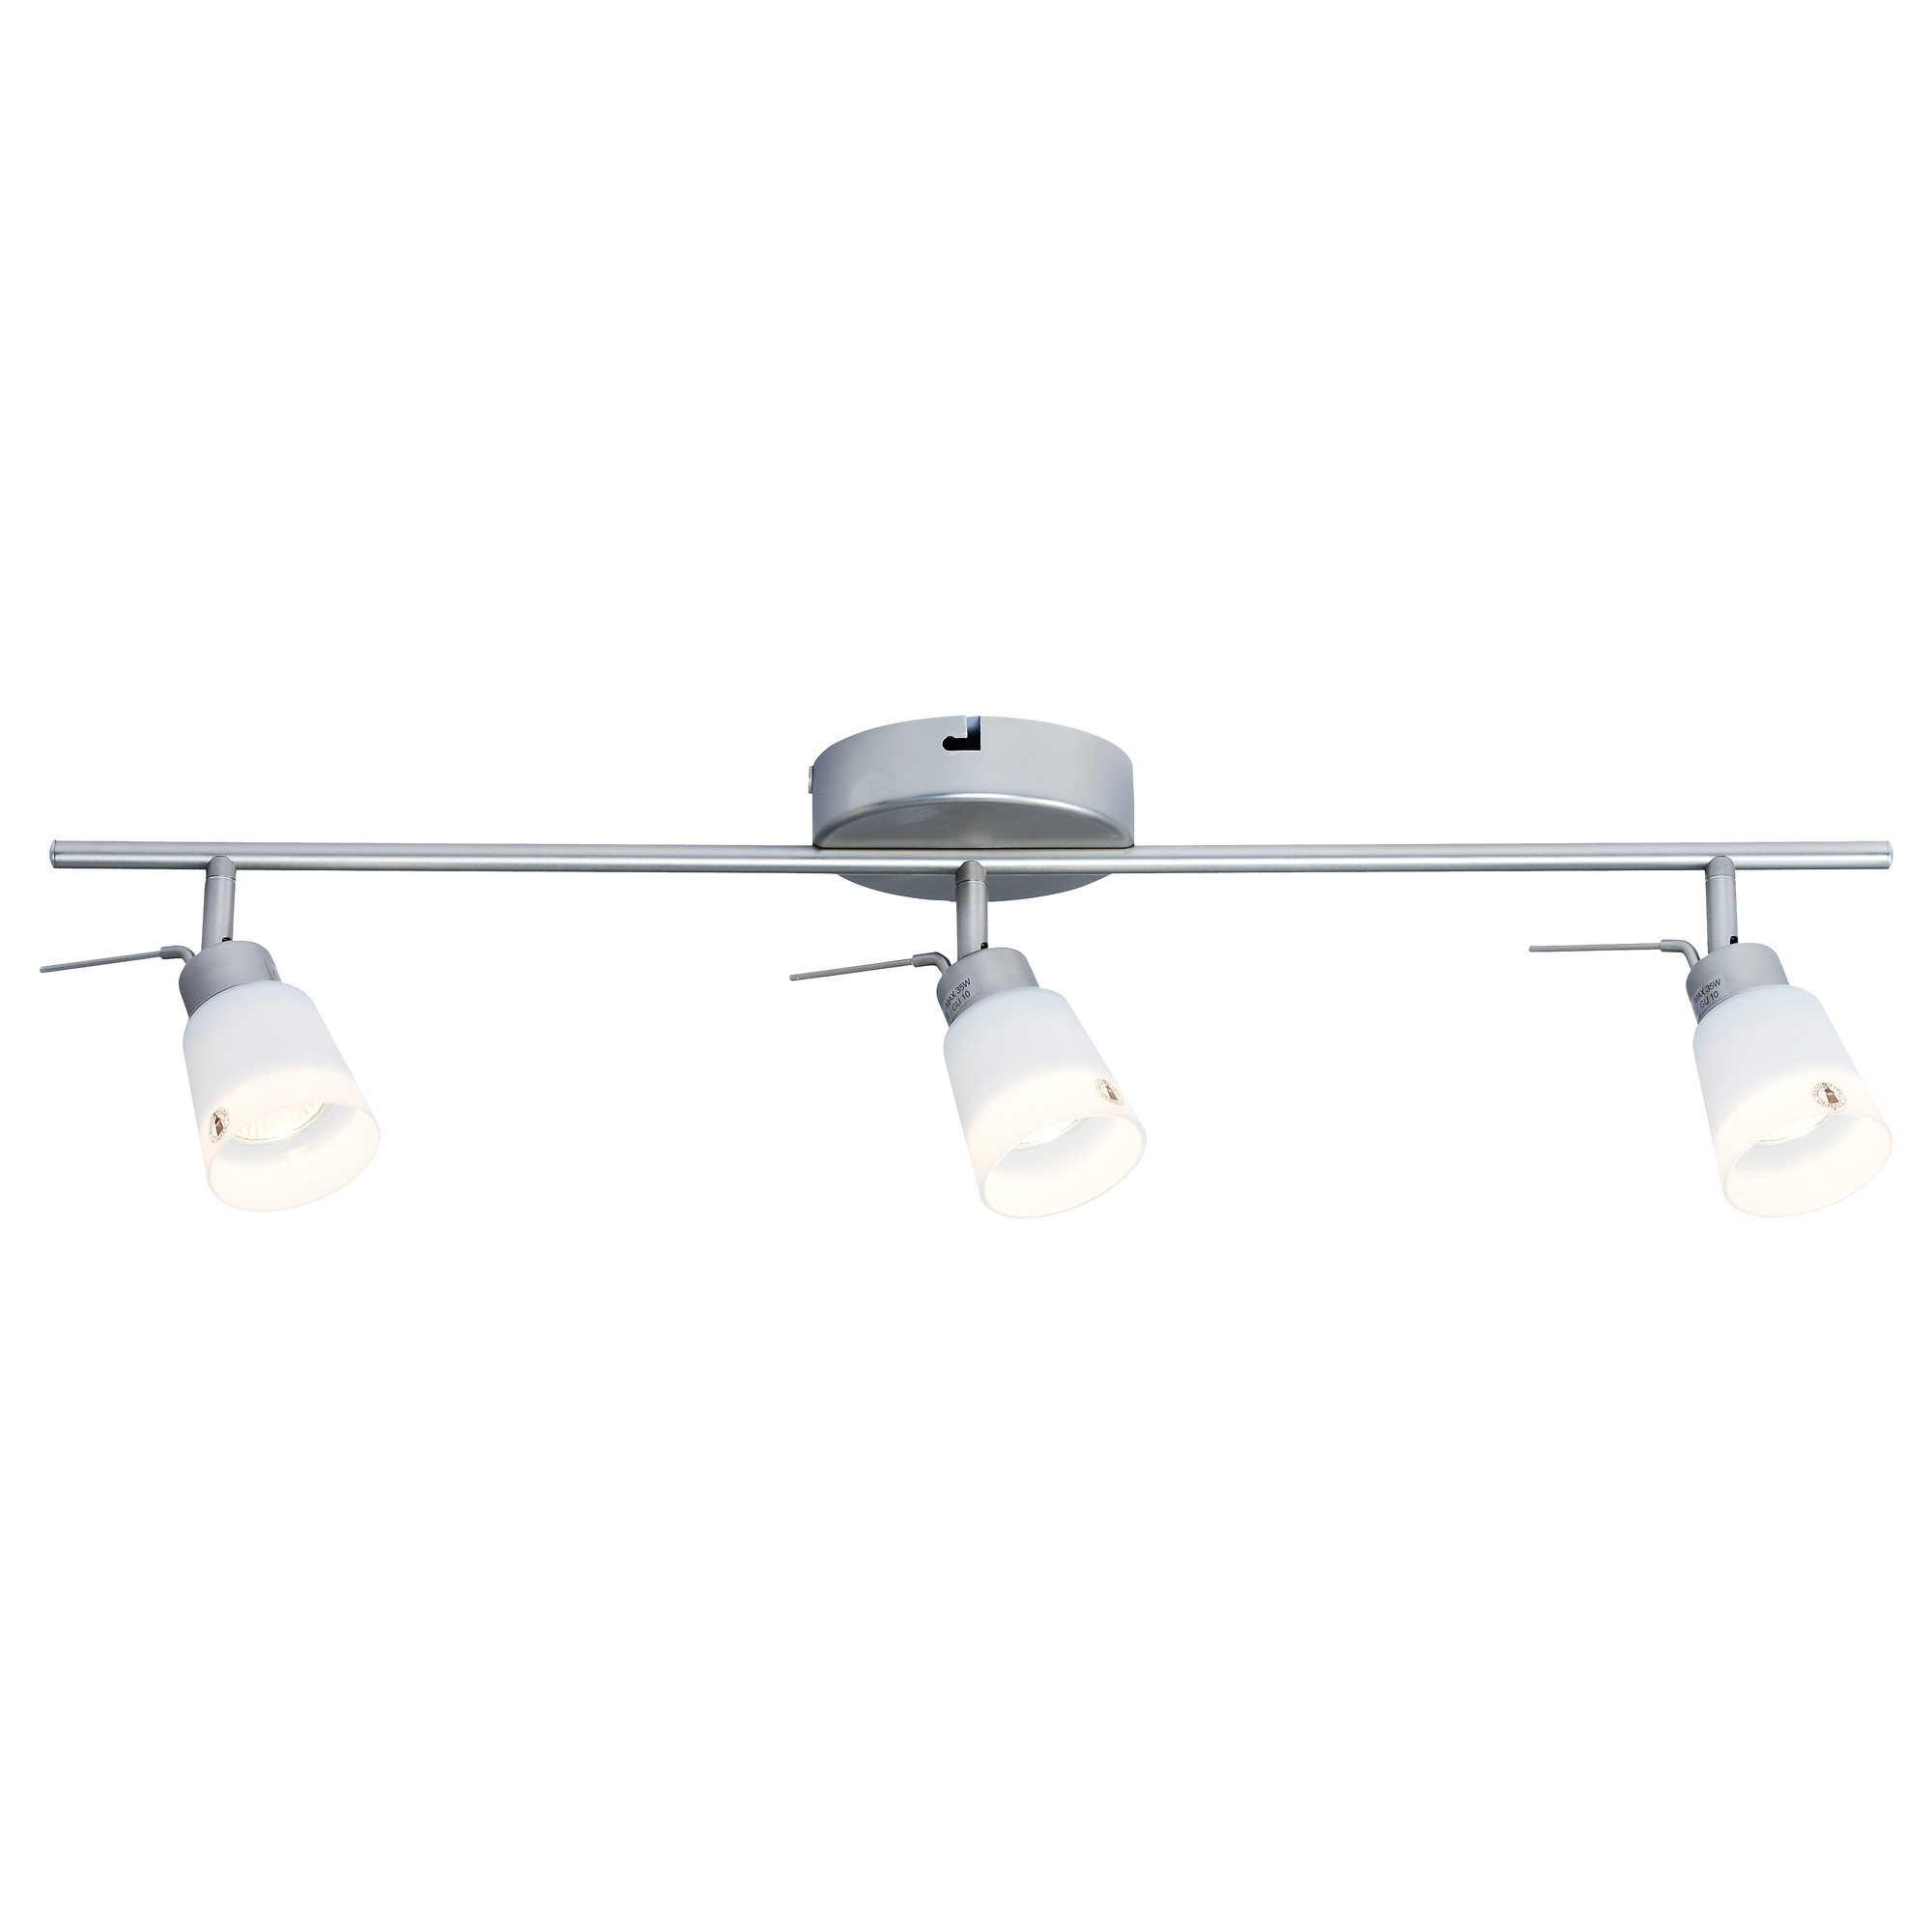 BASISK Ceiling Track Spotlights Nickel Plated White HOME MUST - Kitchen spot light fittings